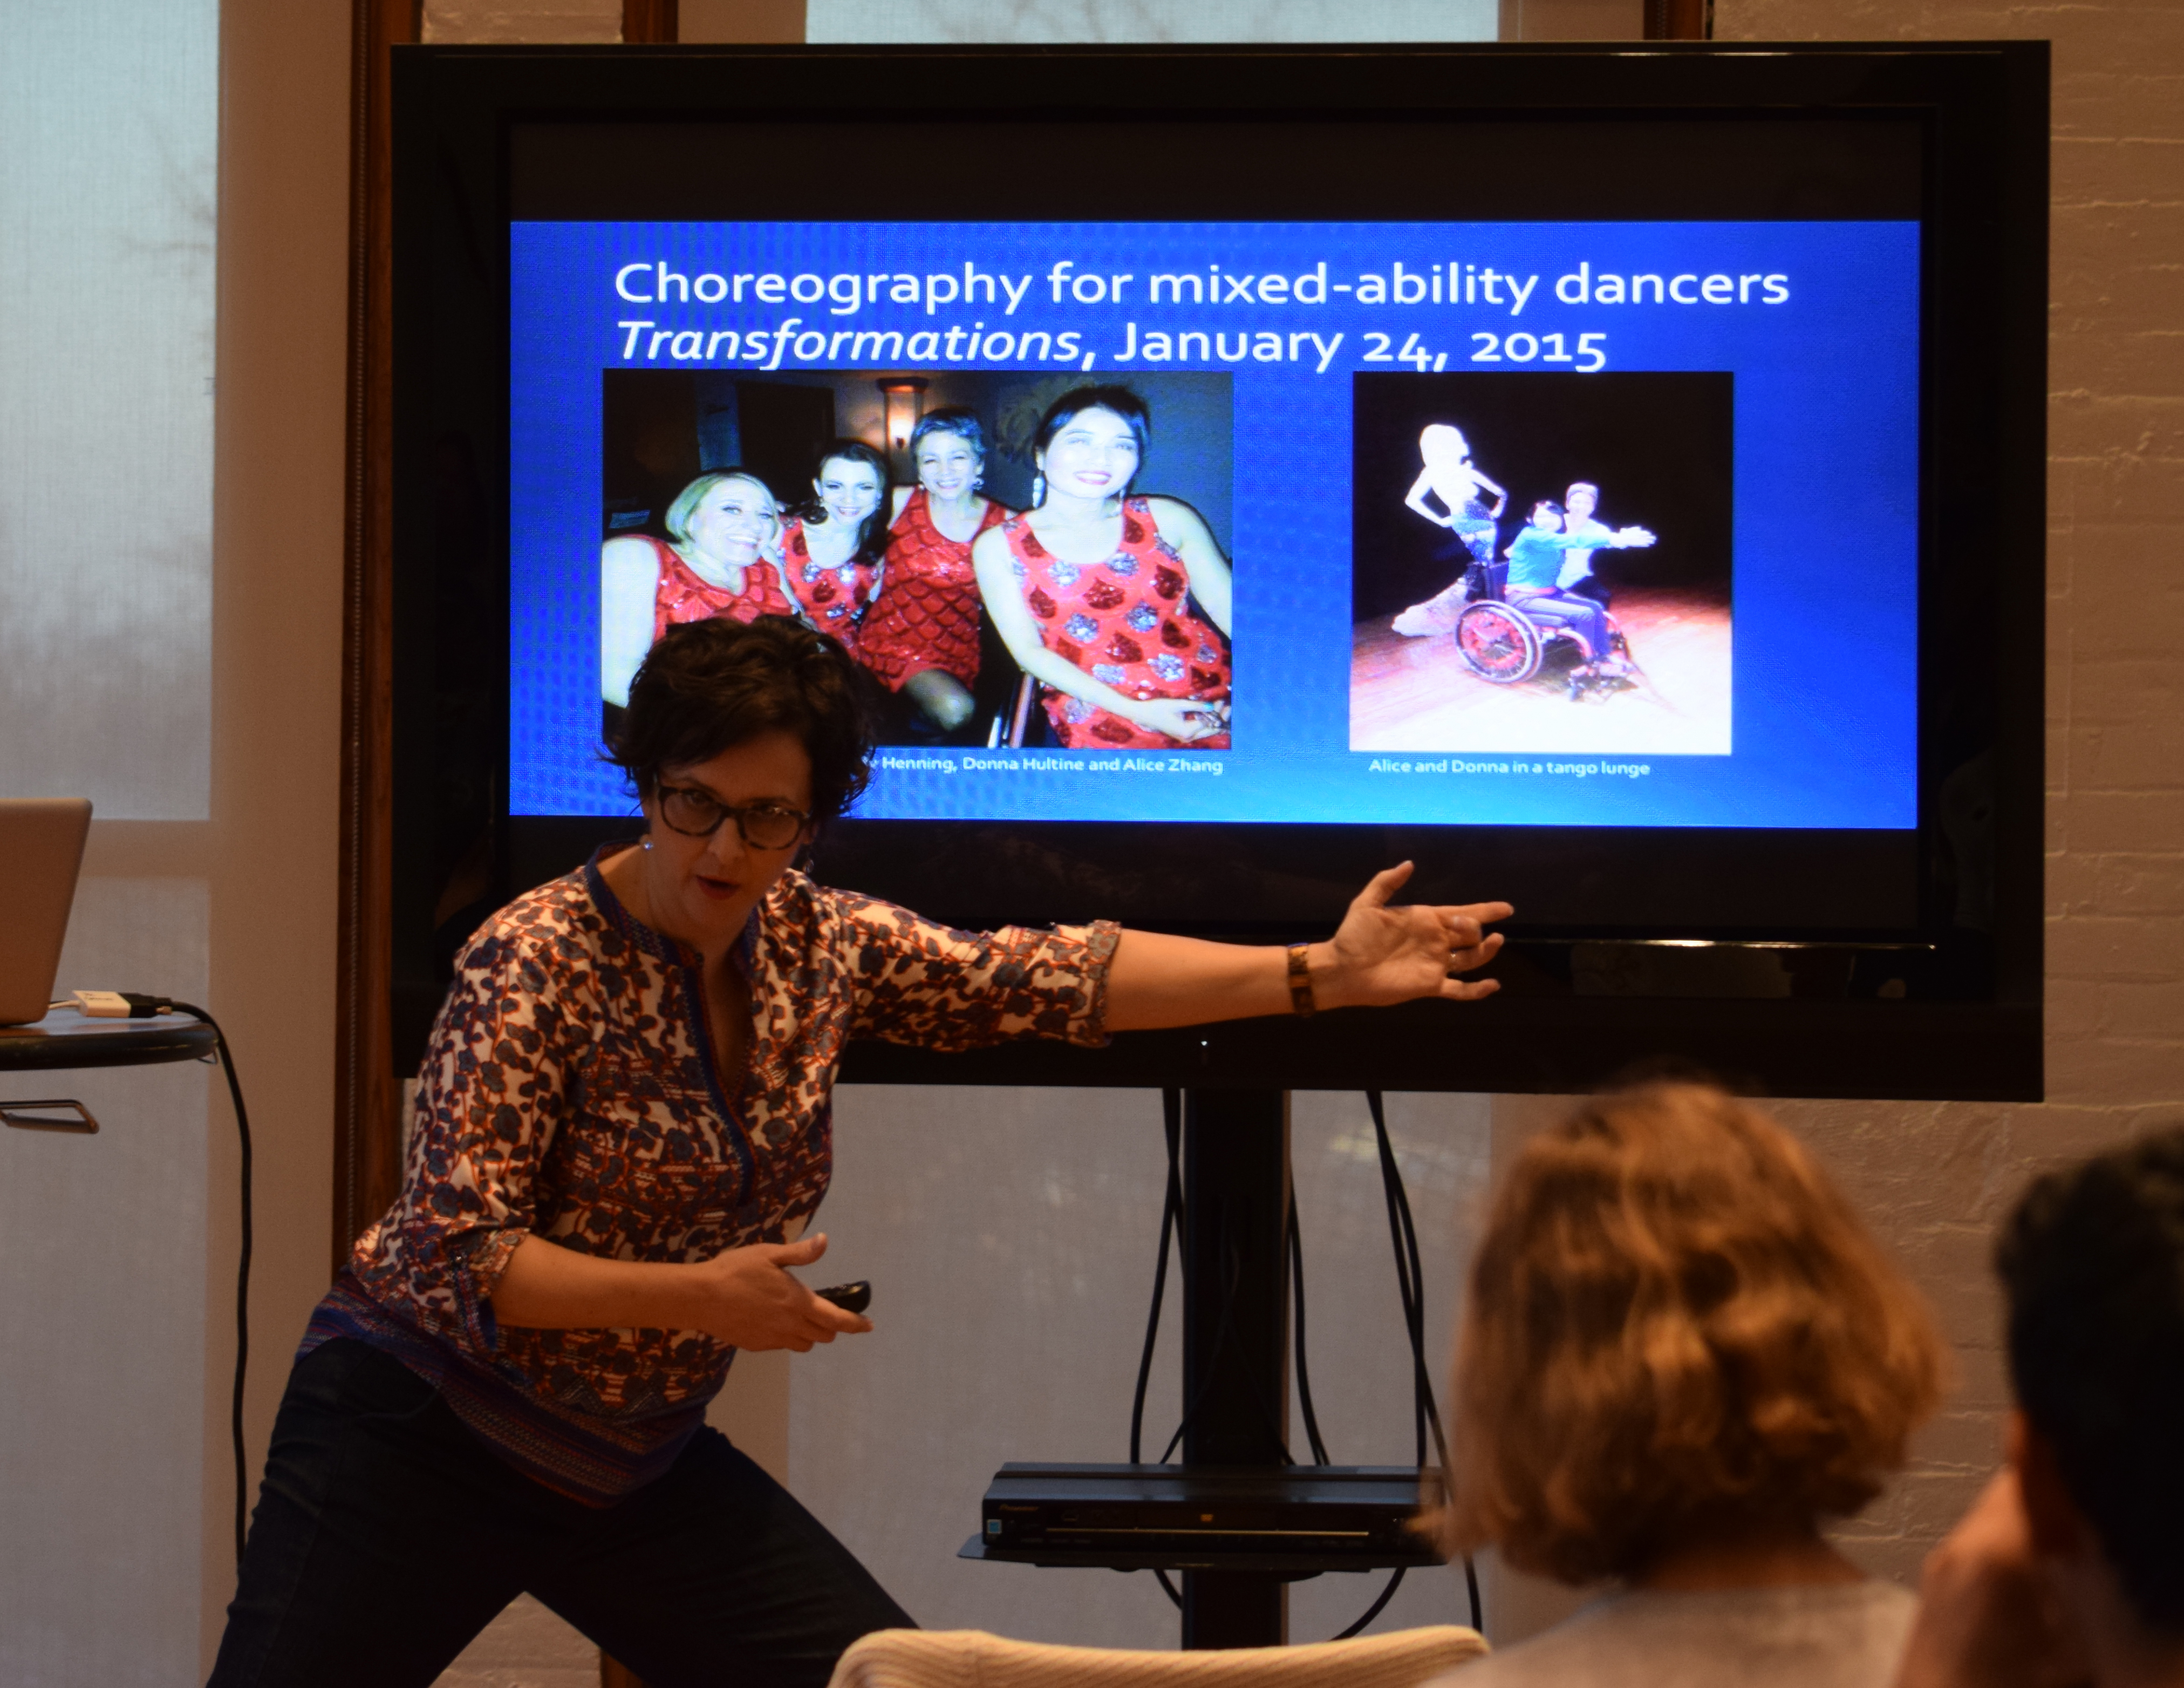 Michelle Heffner Hayes demonstrating choreography for mixed-ability dancers. KU Commons, December 10, 2016